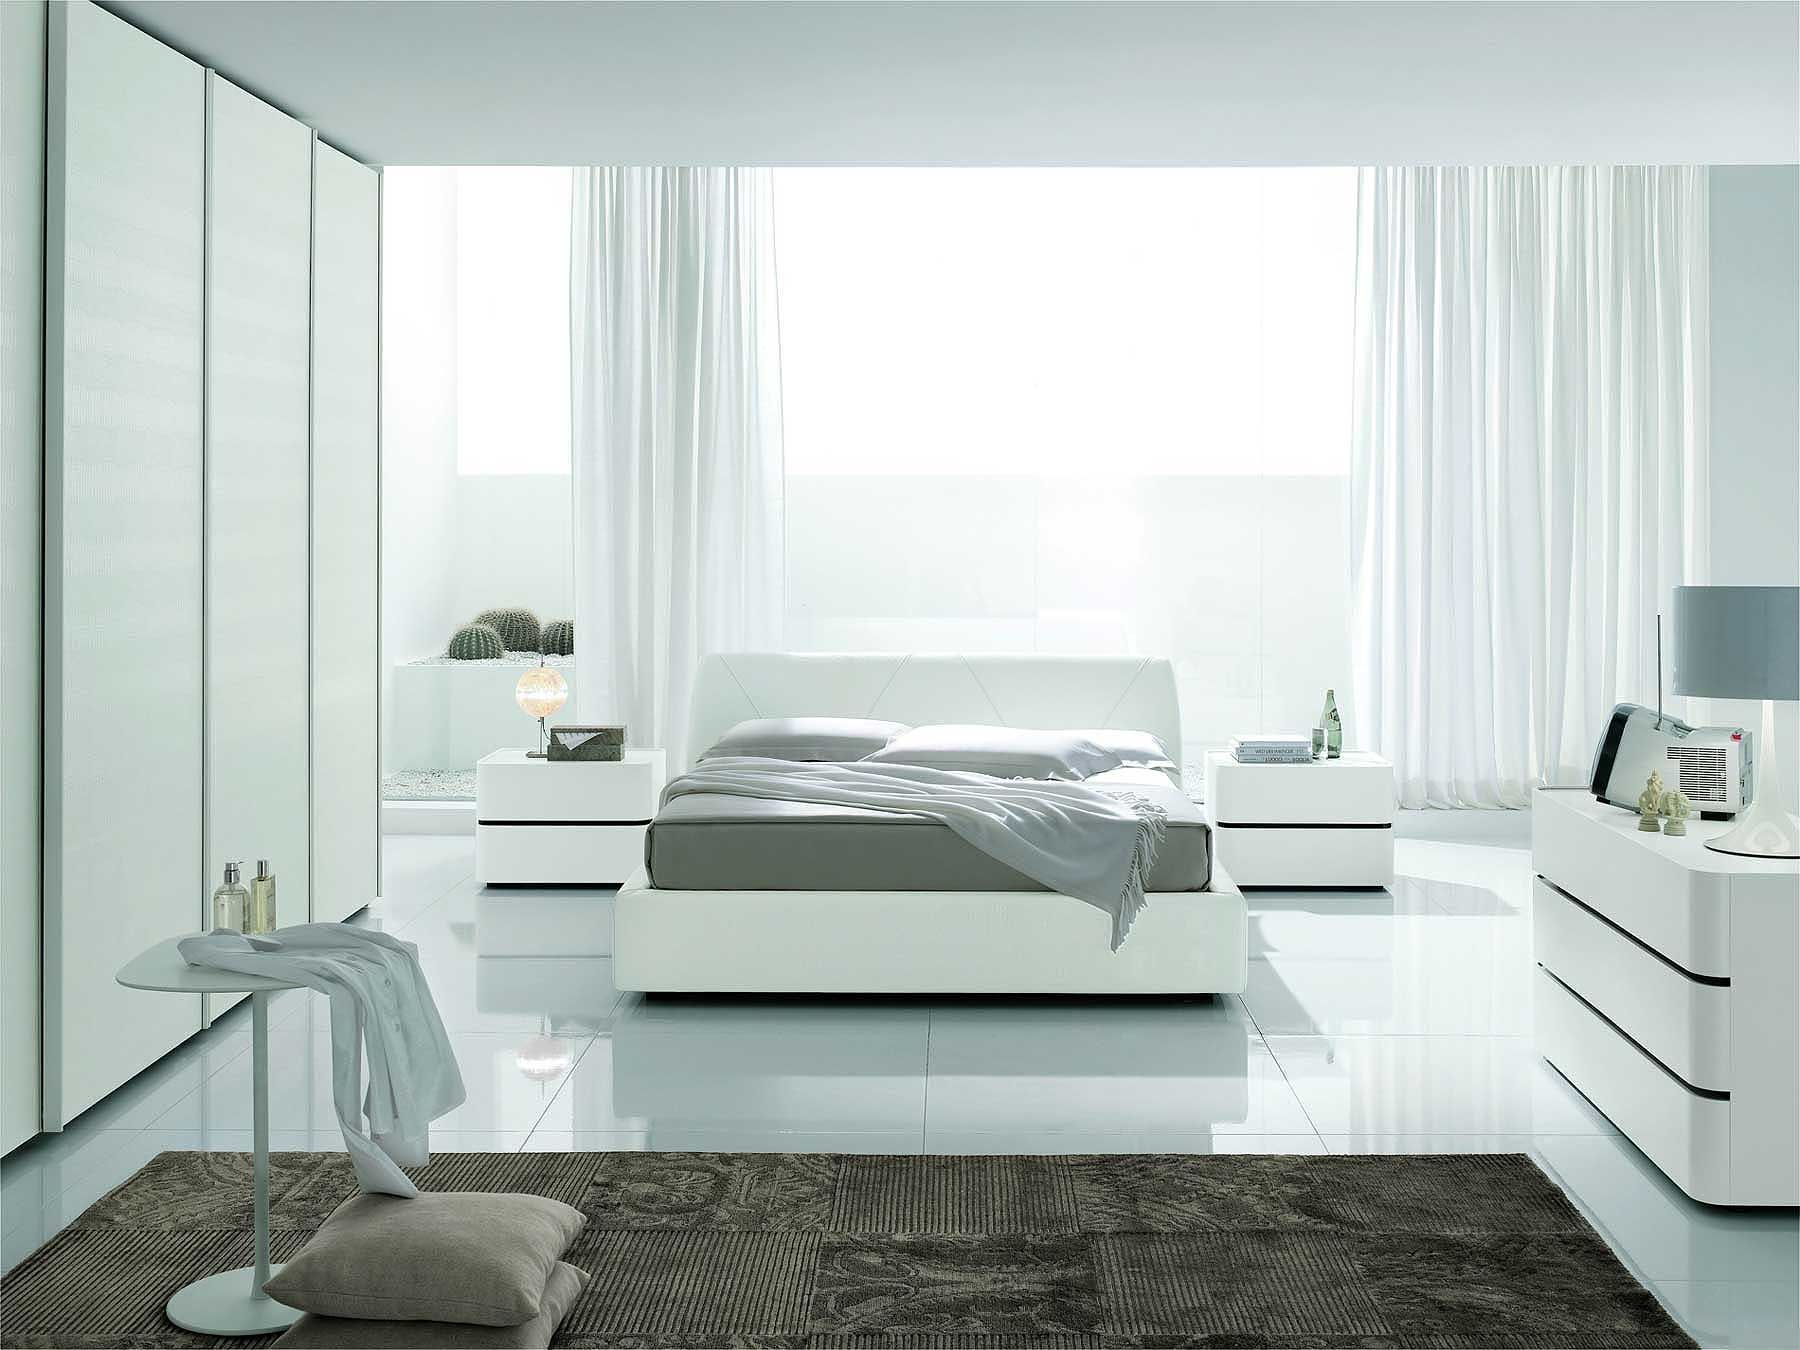 All white bedroom ikea - 16 Cool And Modern White Bedroom Designs Outstanding Clean White Based Bedroom Decoration With Floor Up To Ceiling White Closet And White